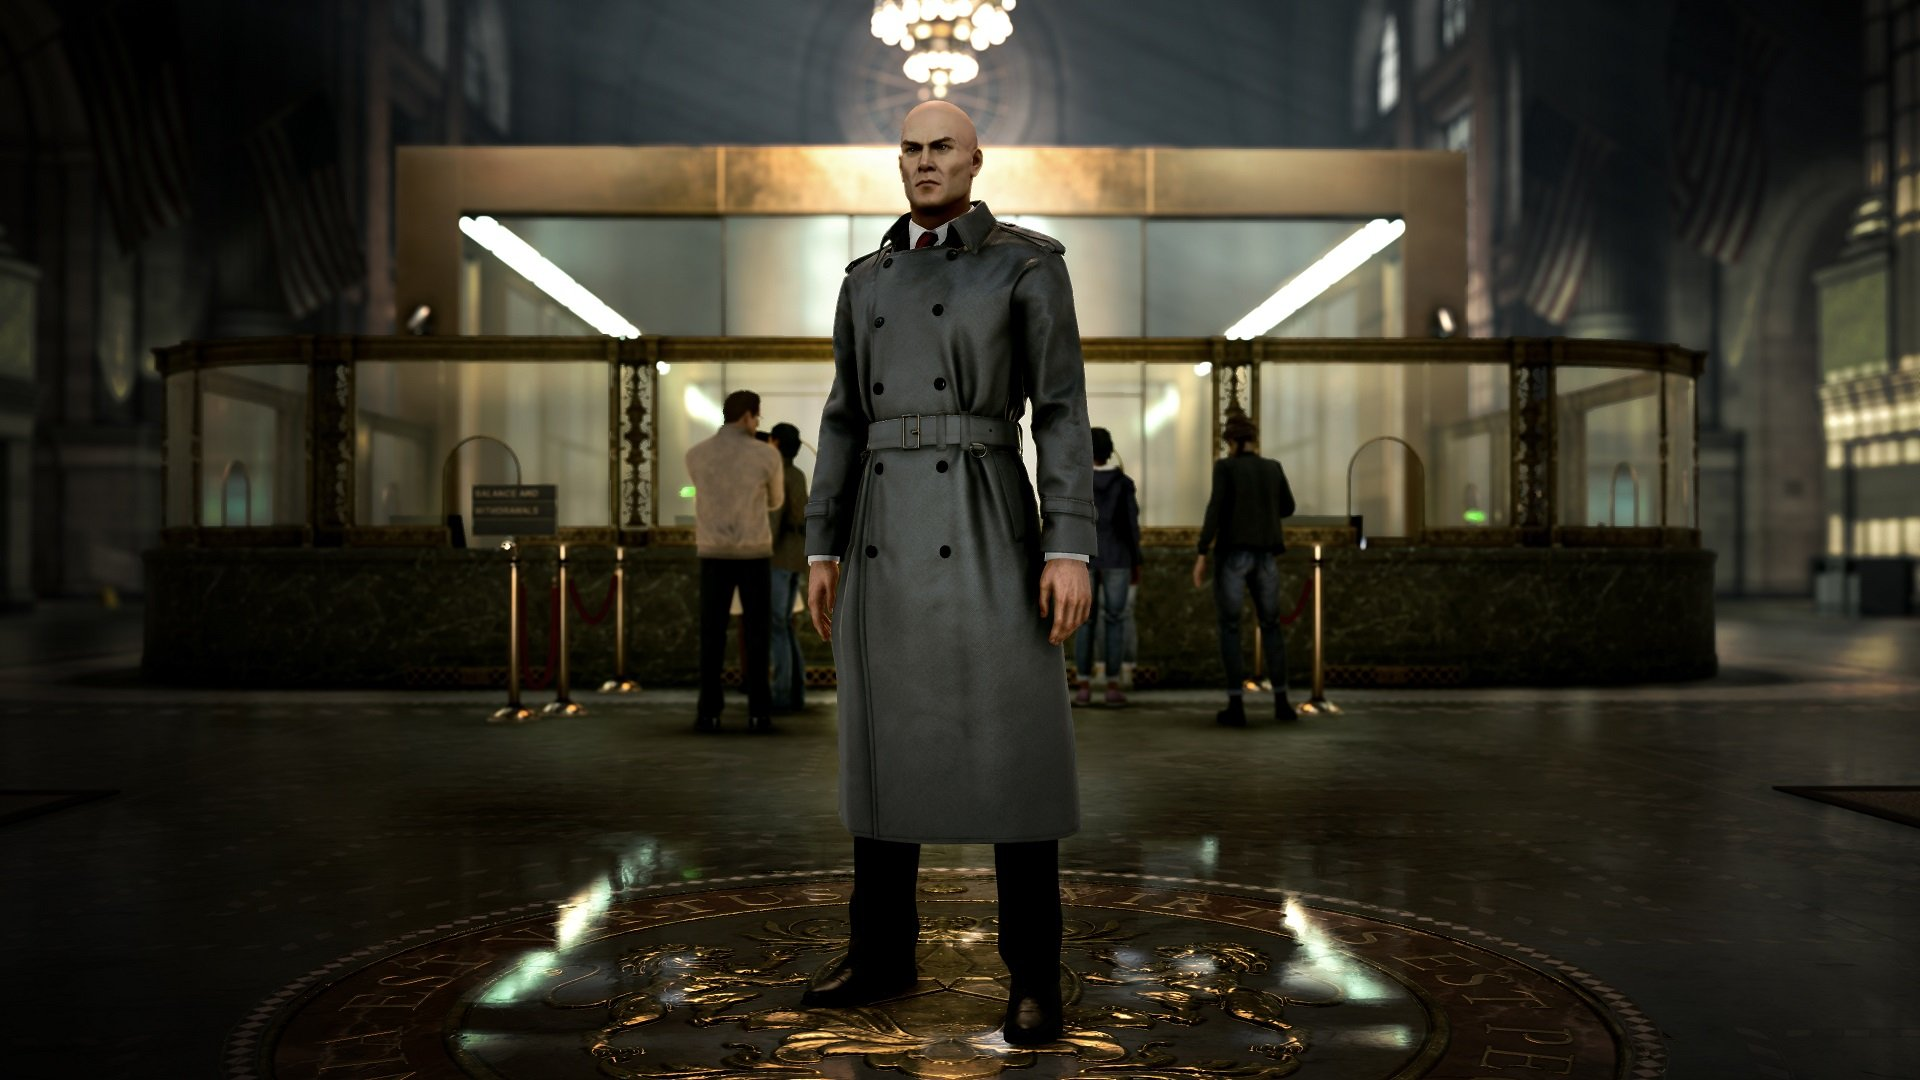 Agent 47 in The New Yorker trench coat available in Hitman 2's Expansion Pass.